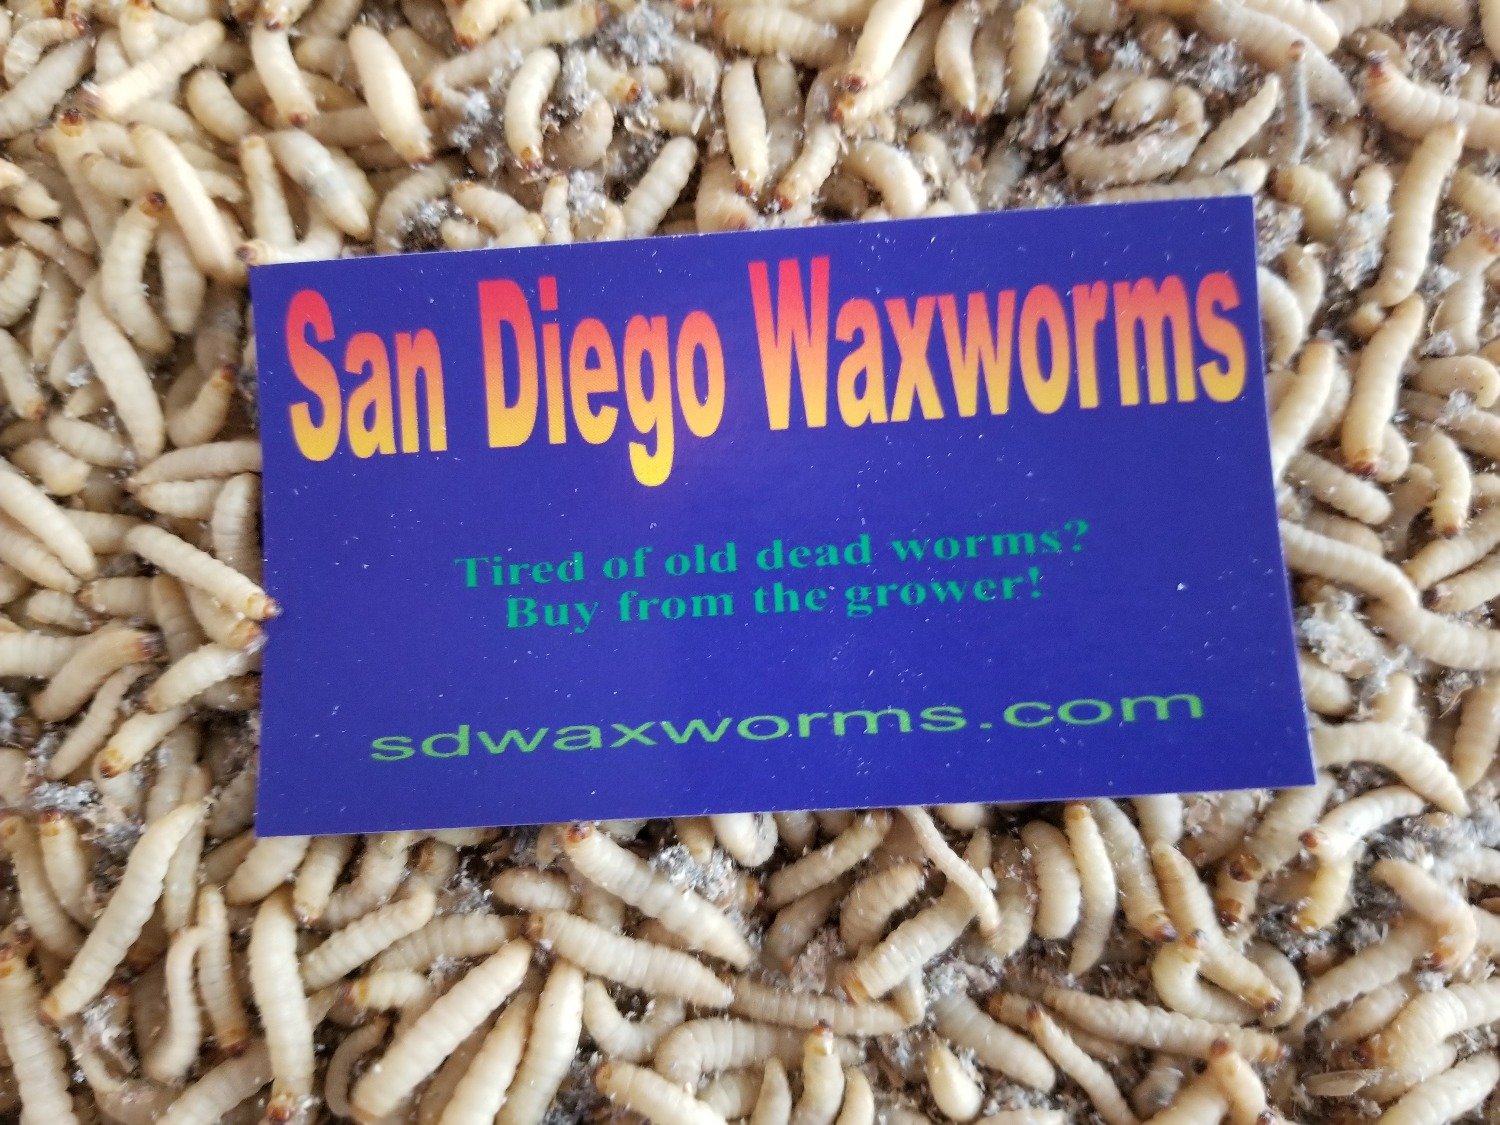 Don't buy dead worms!